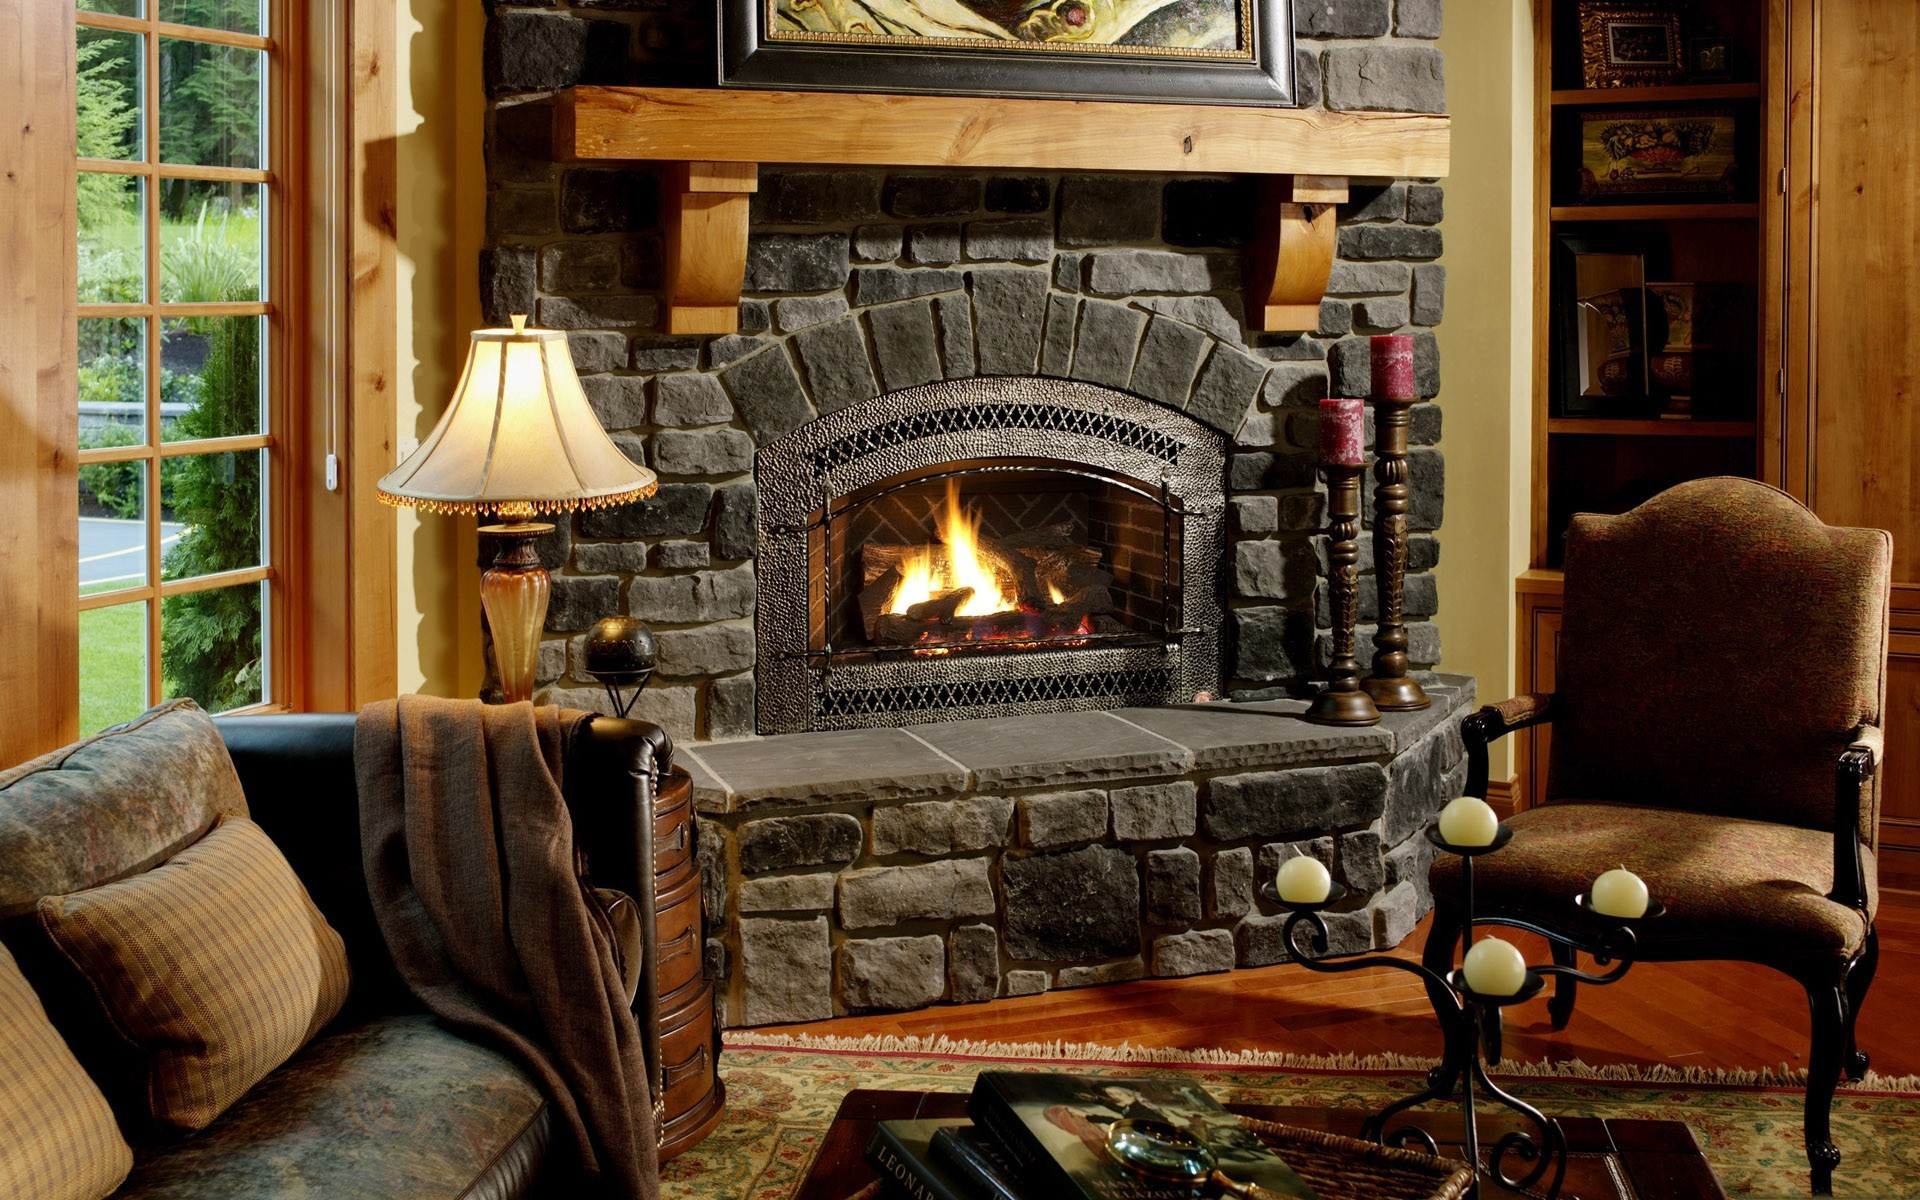 Cached Pictures of lit fireplaces